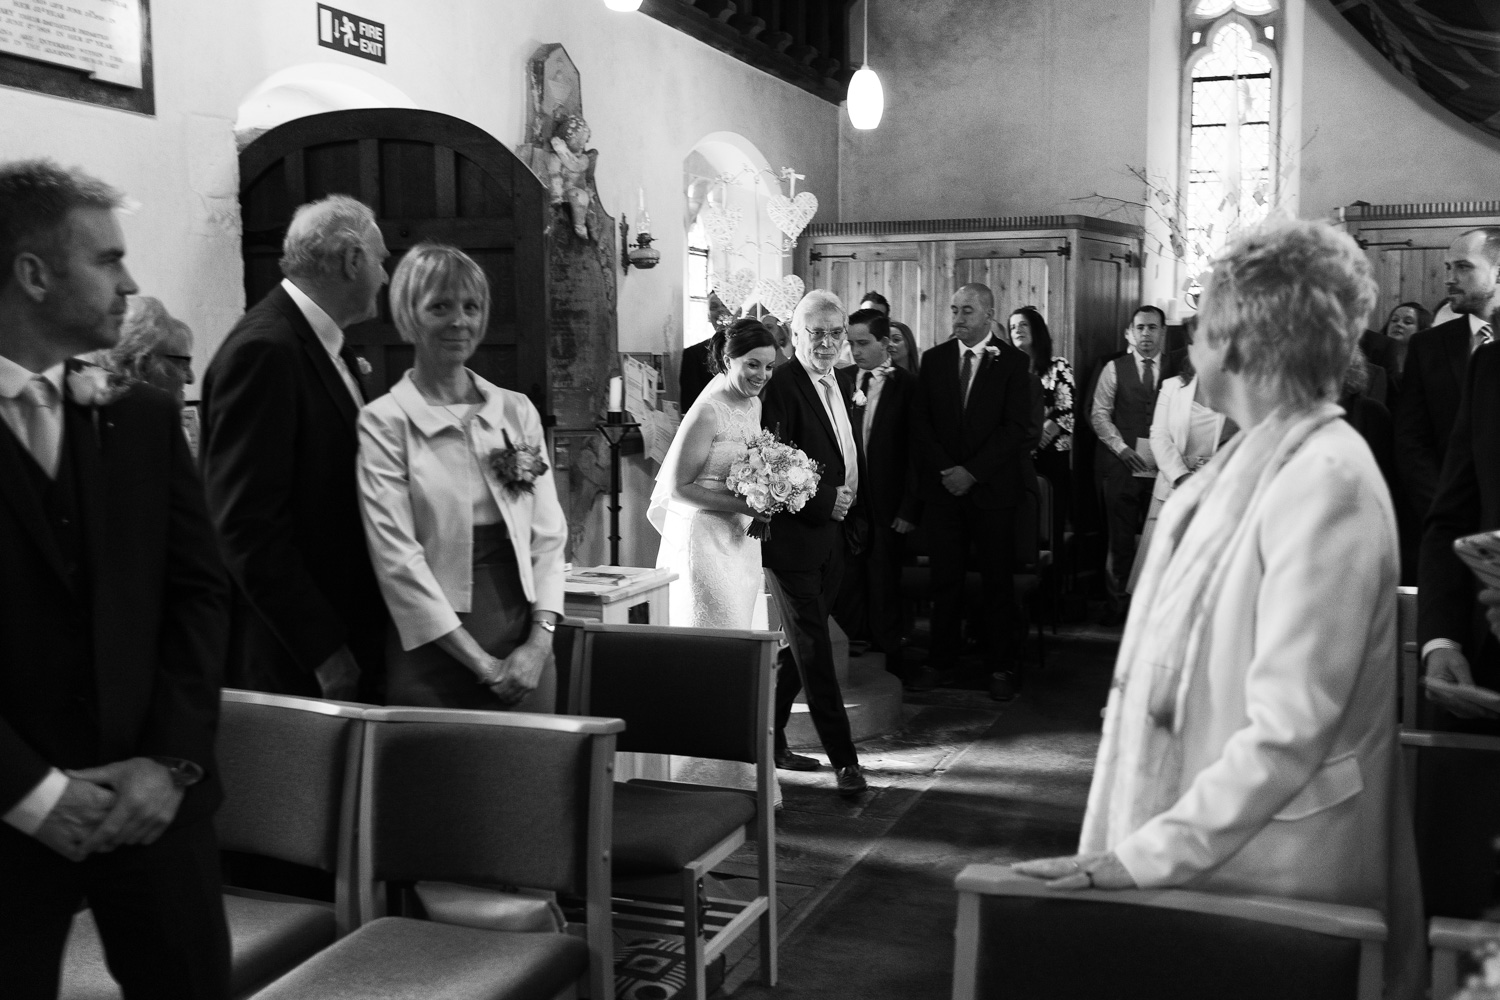 South-Wales-Wedding-Photographer-Mark-Barnes-Newport-The-old-barn-inn-Ginette-and-Lewis-blog-17.jpg